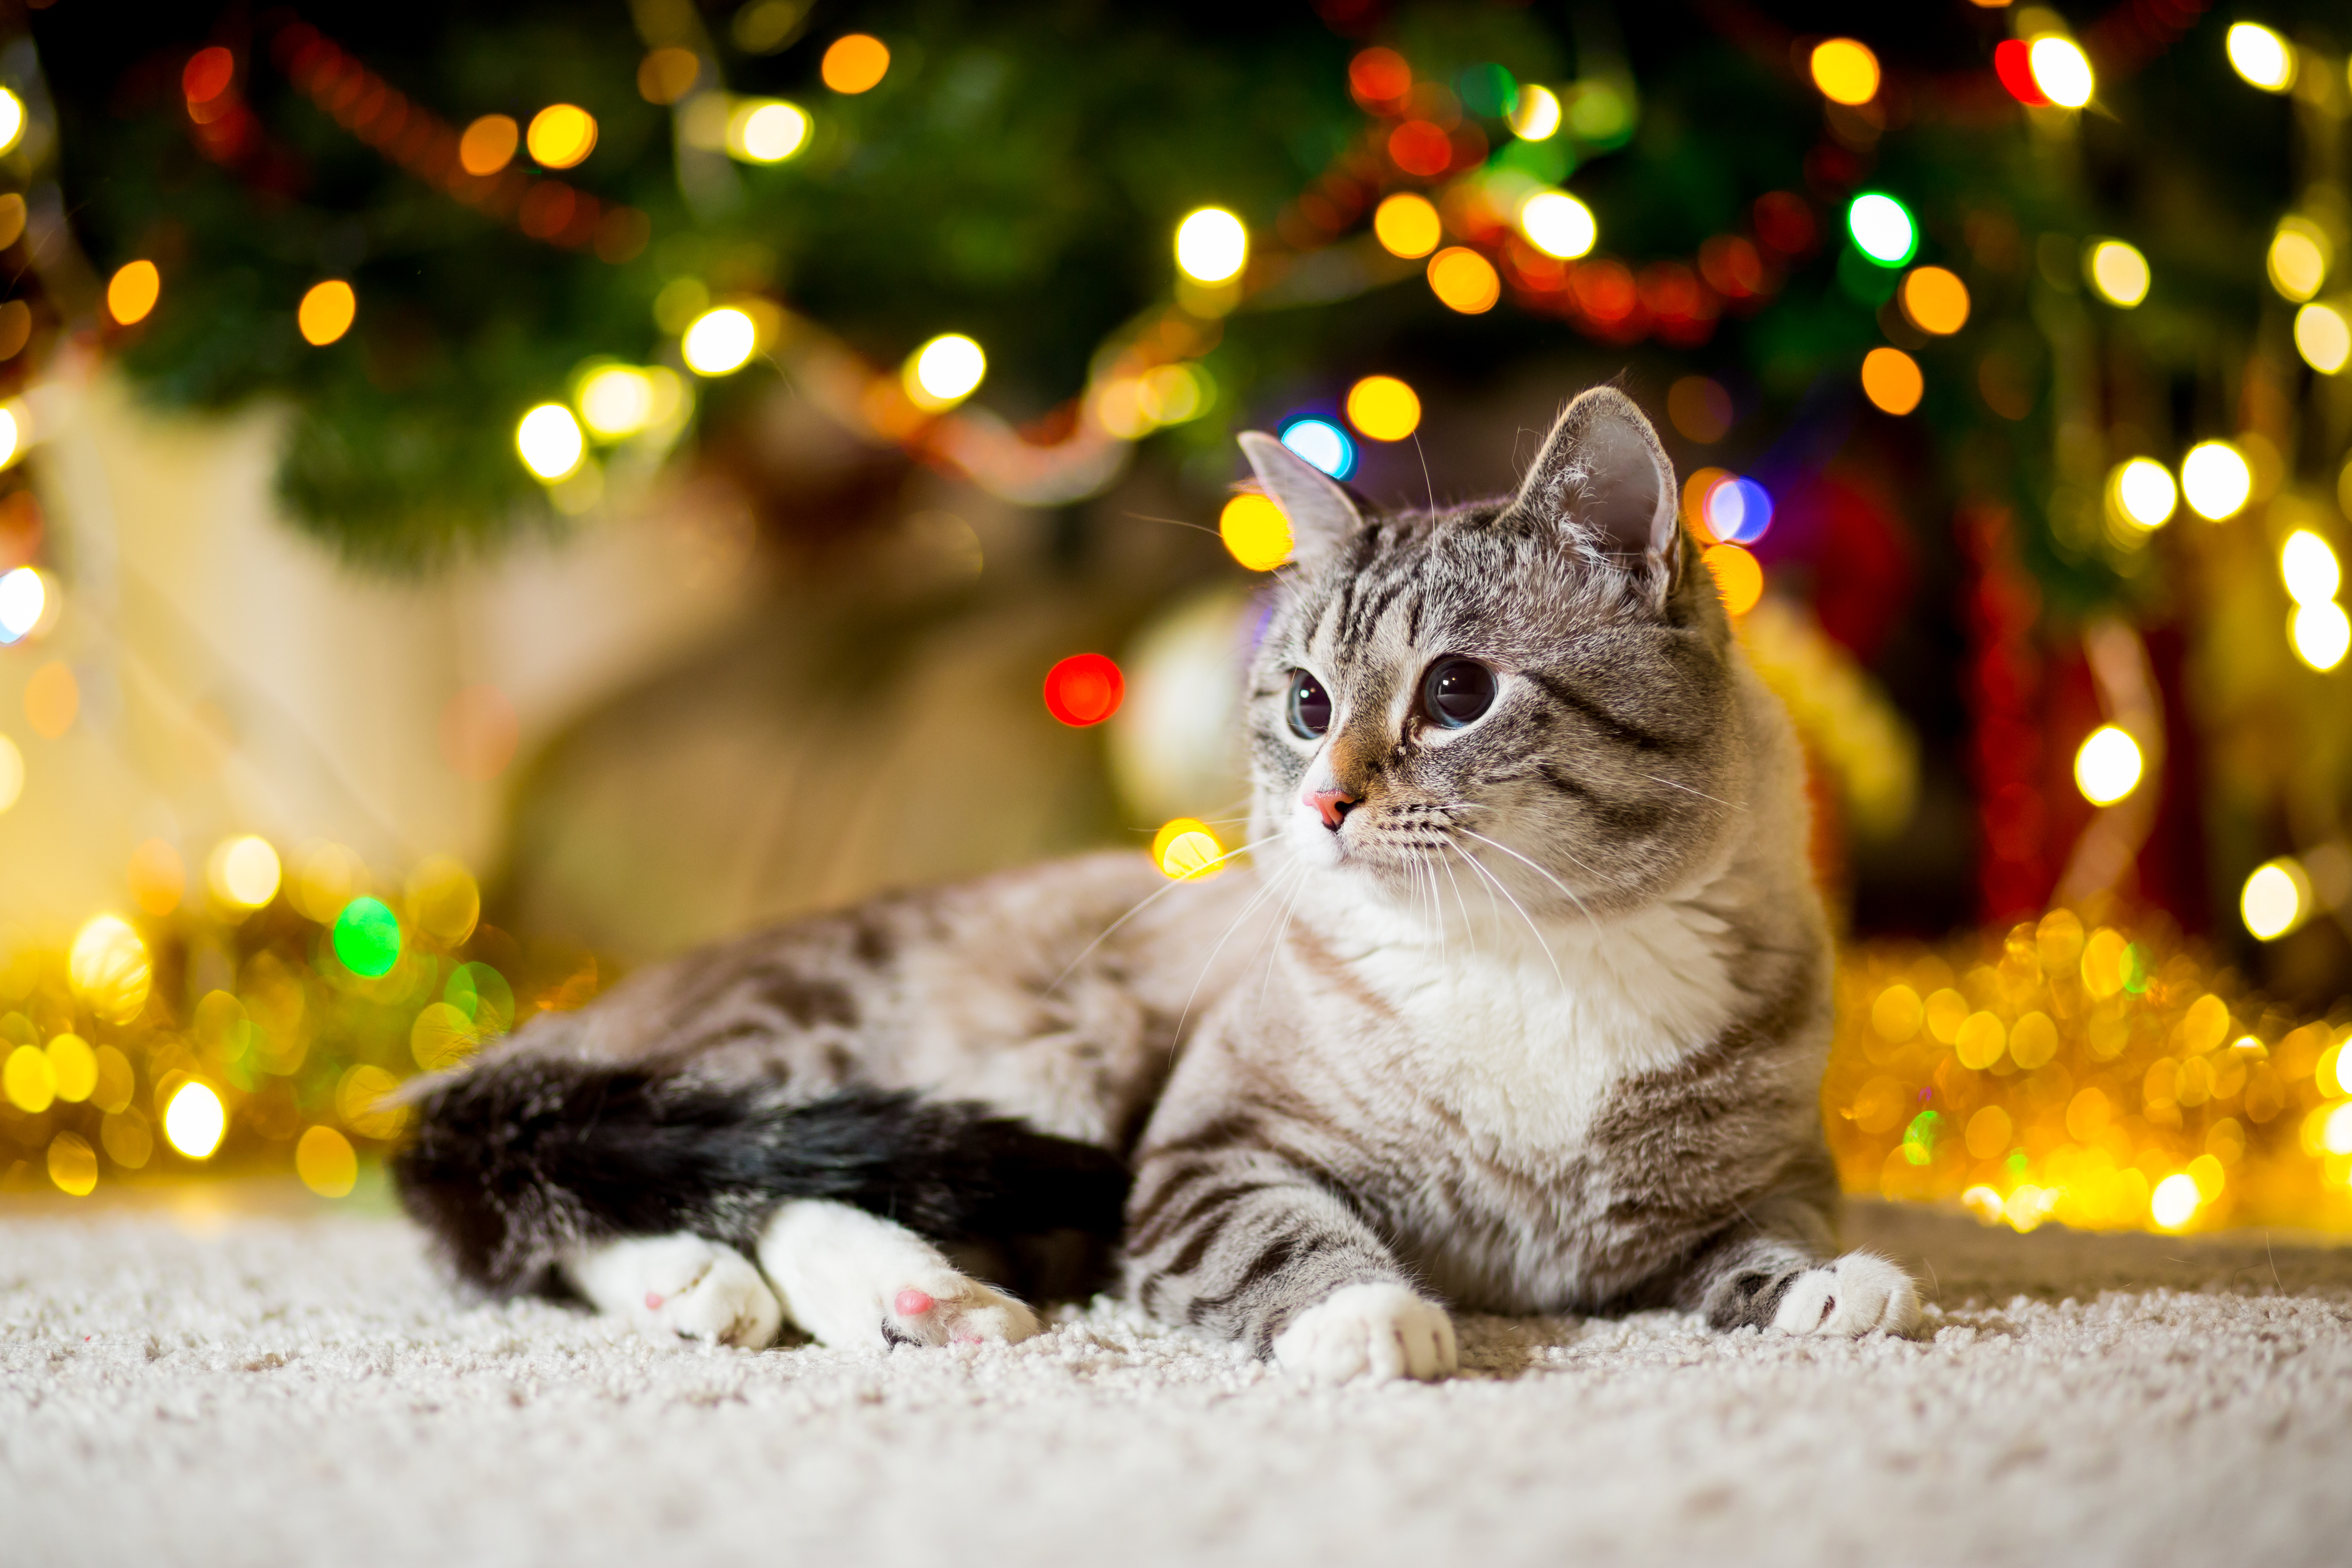 A cute grey tabby cat sits under a Christmas tree